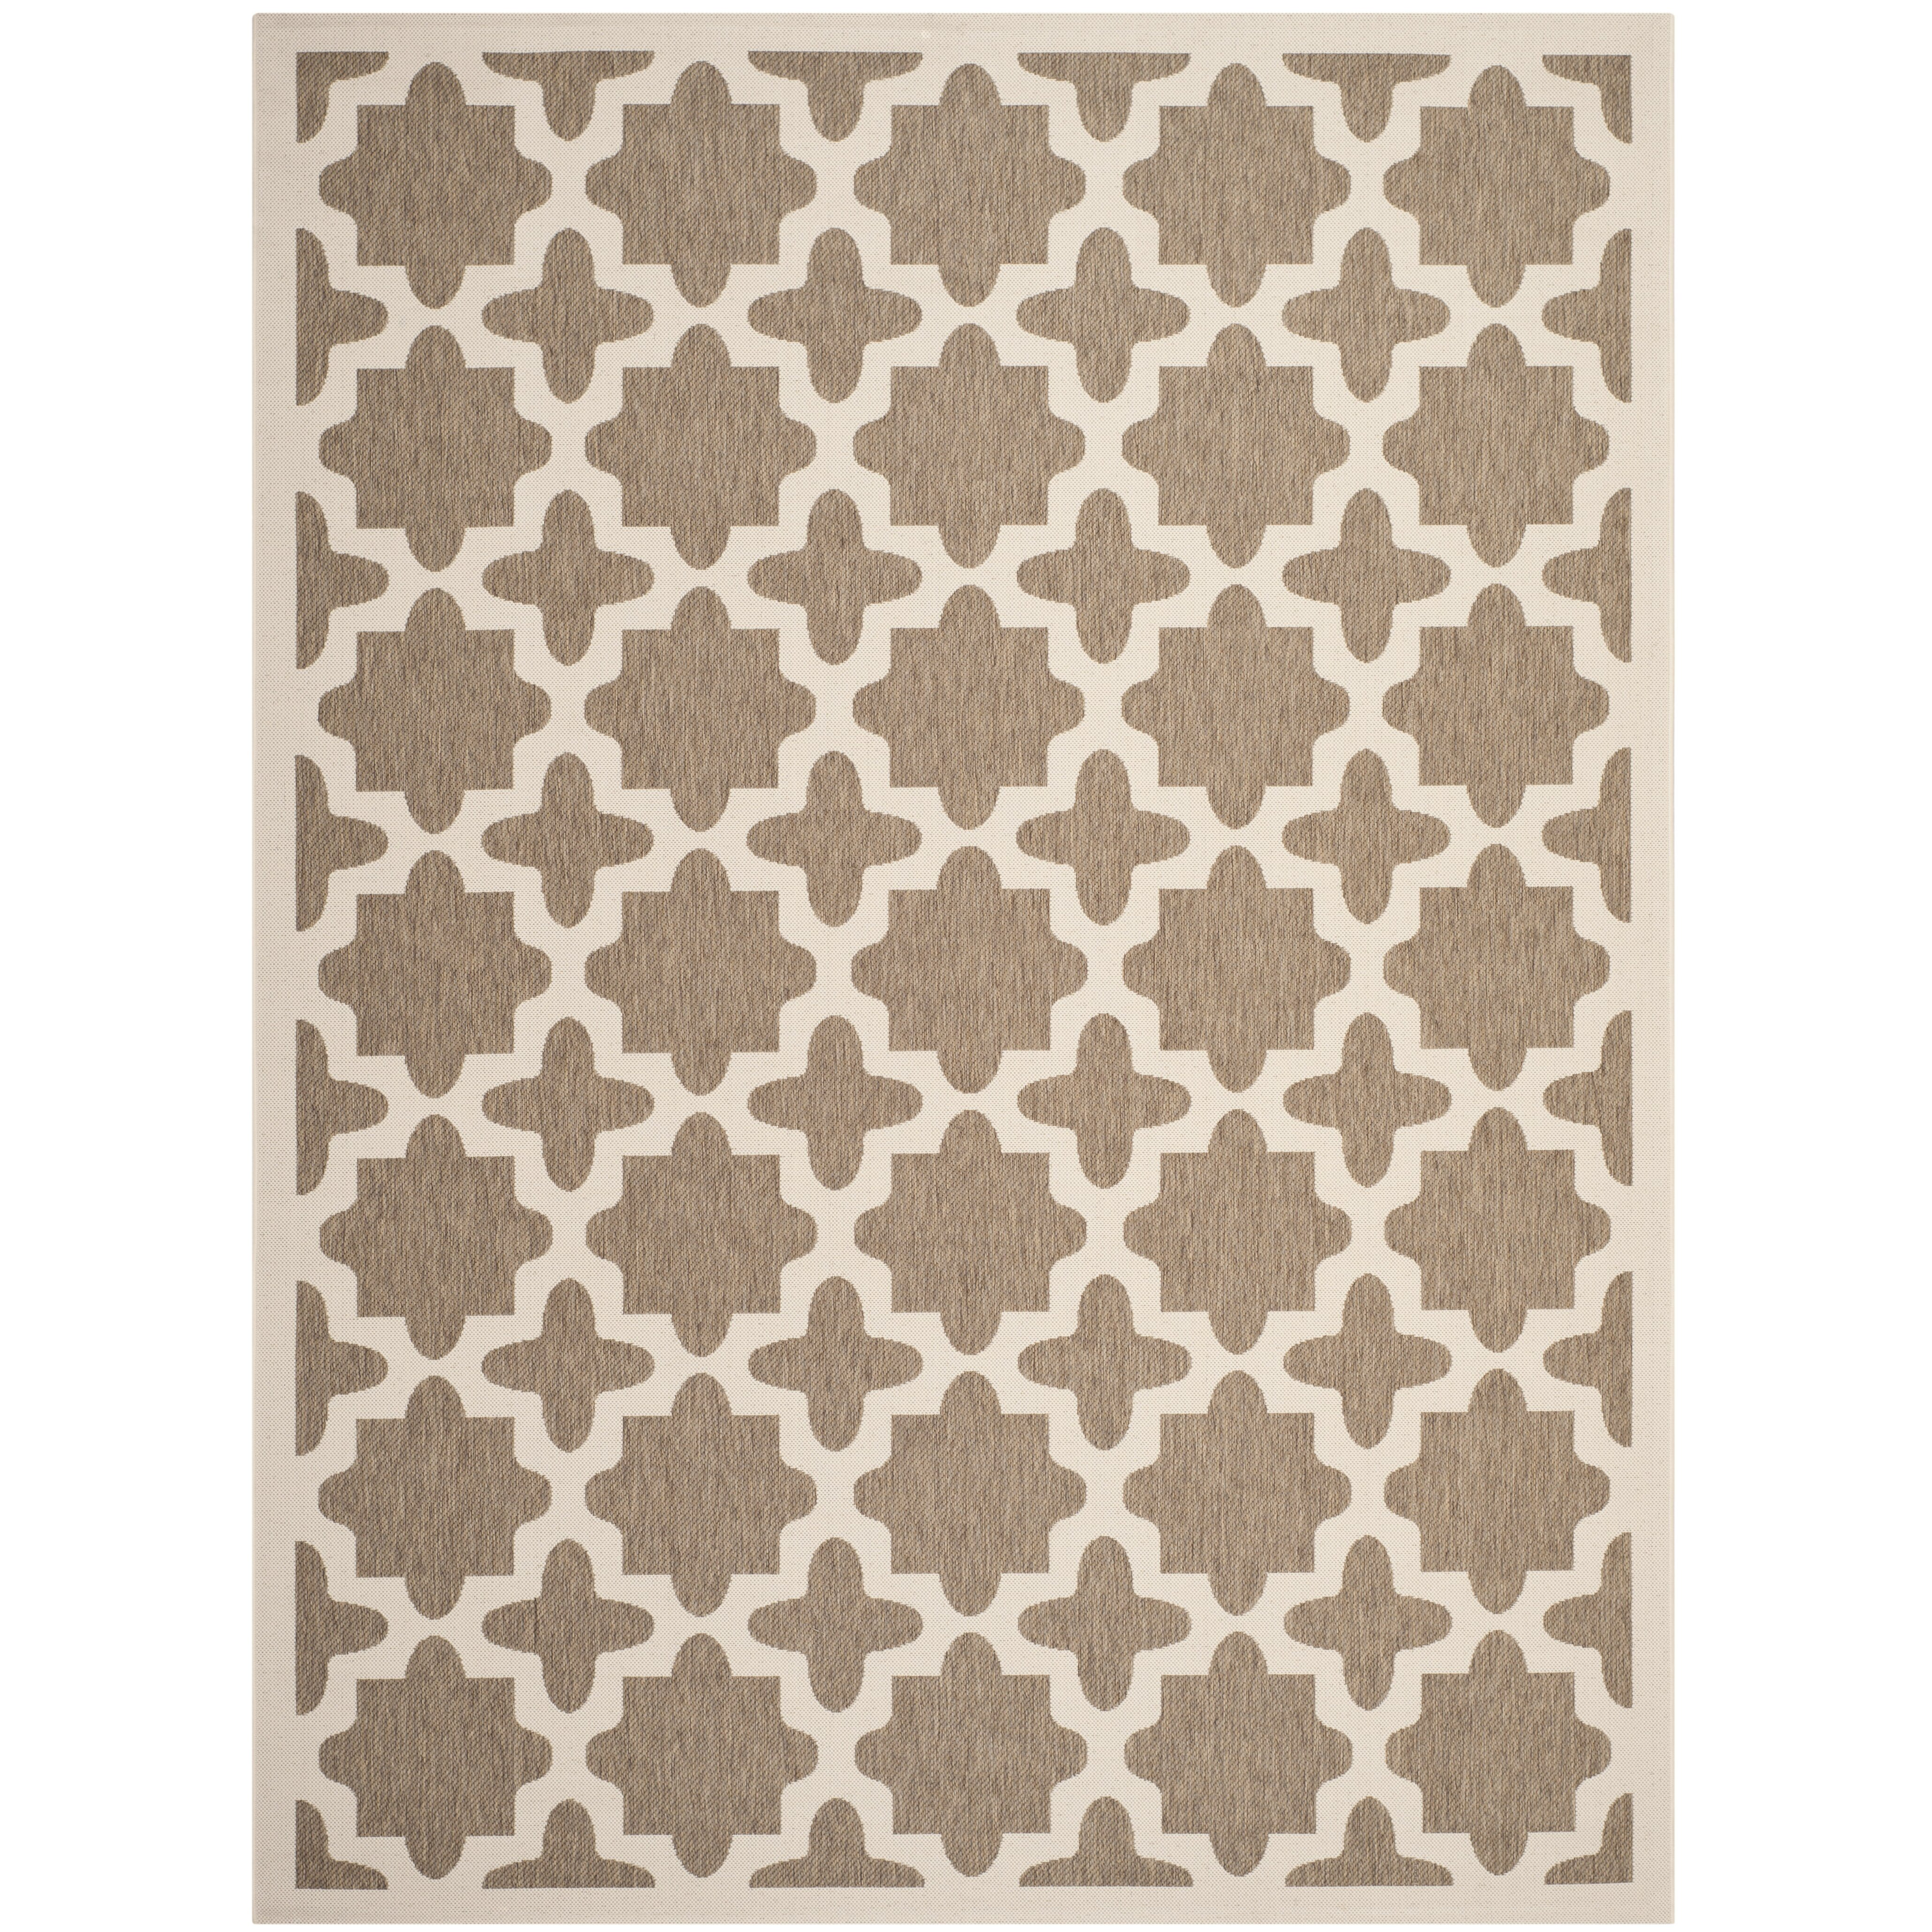 Safavieh Outdoor: Safavieh Courtyard Brown/Bone Indoor/Outdoor Area Rug